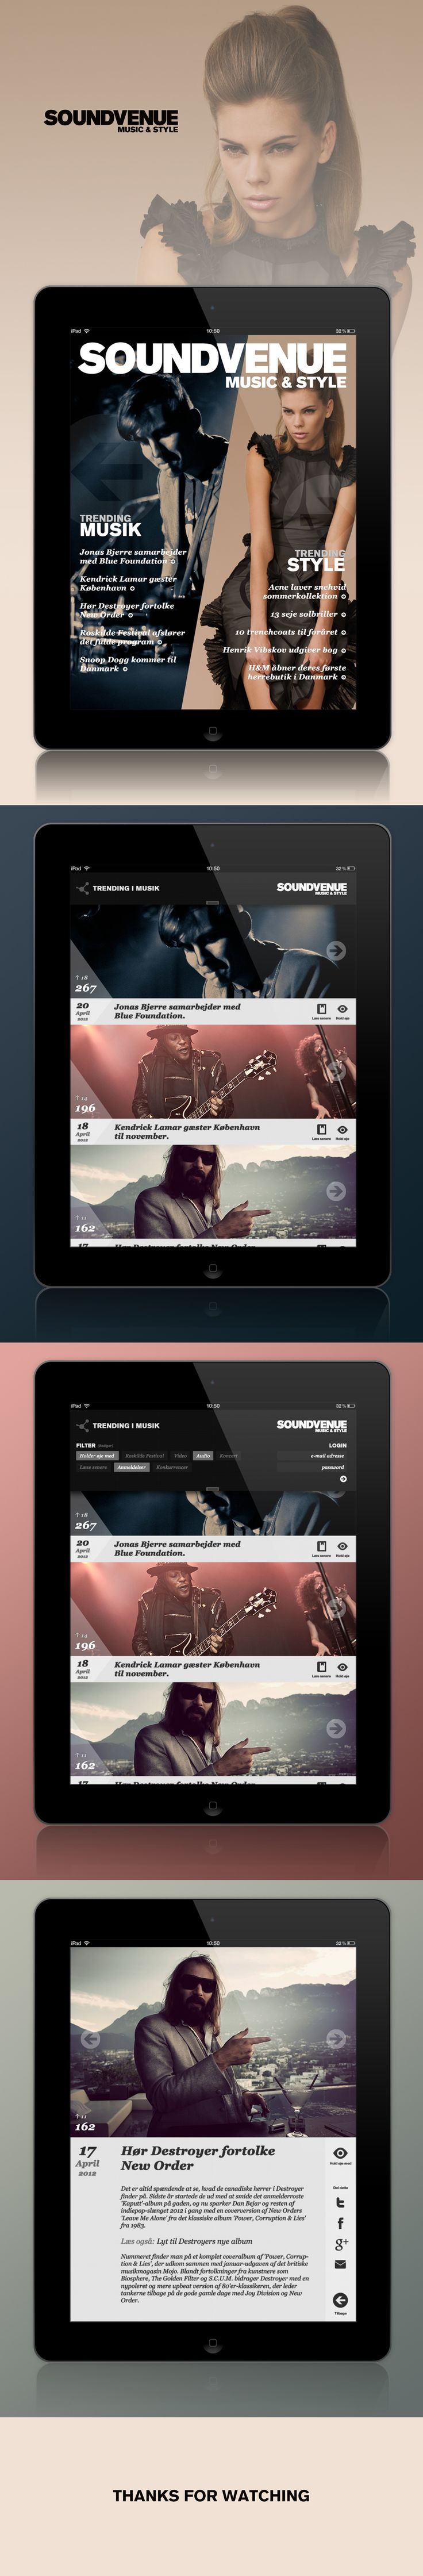 Soundvenue - Interaction Design, UI/UX. This case was a school project at DMJX. Soundvenue is a magazine focusing on music and style and our assignment was to design a tablet concept version of their actual website. My concept was to highlight the most trending stories and styles combined together with the staffs usual content. iPad App Design, Concept, Music & Style, Lifestyle, Soundvenue.